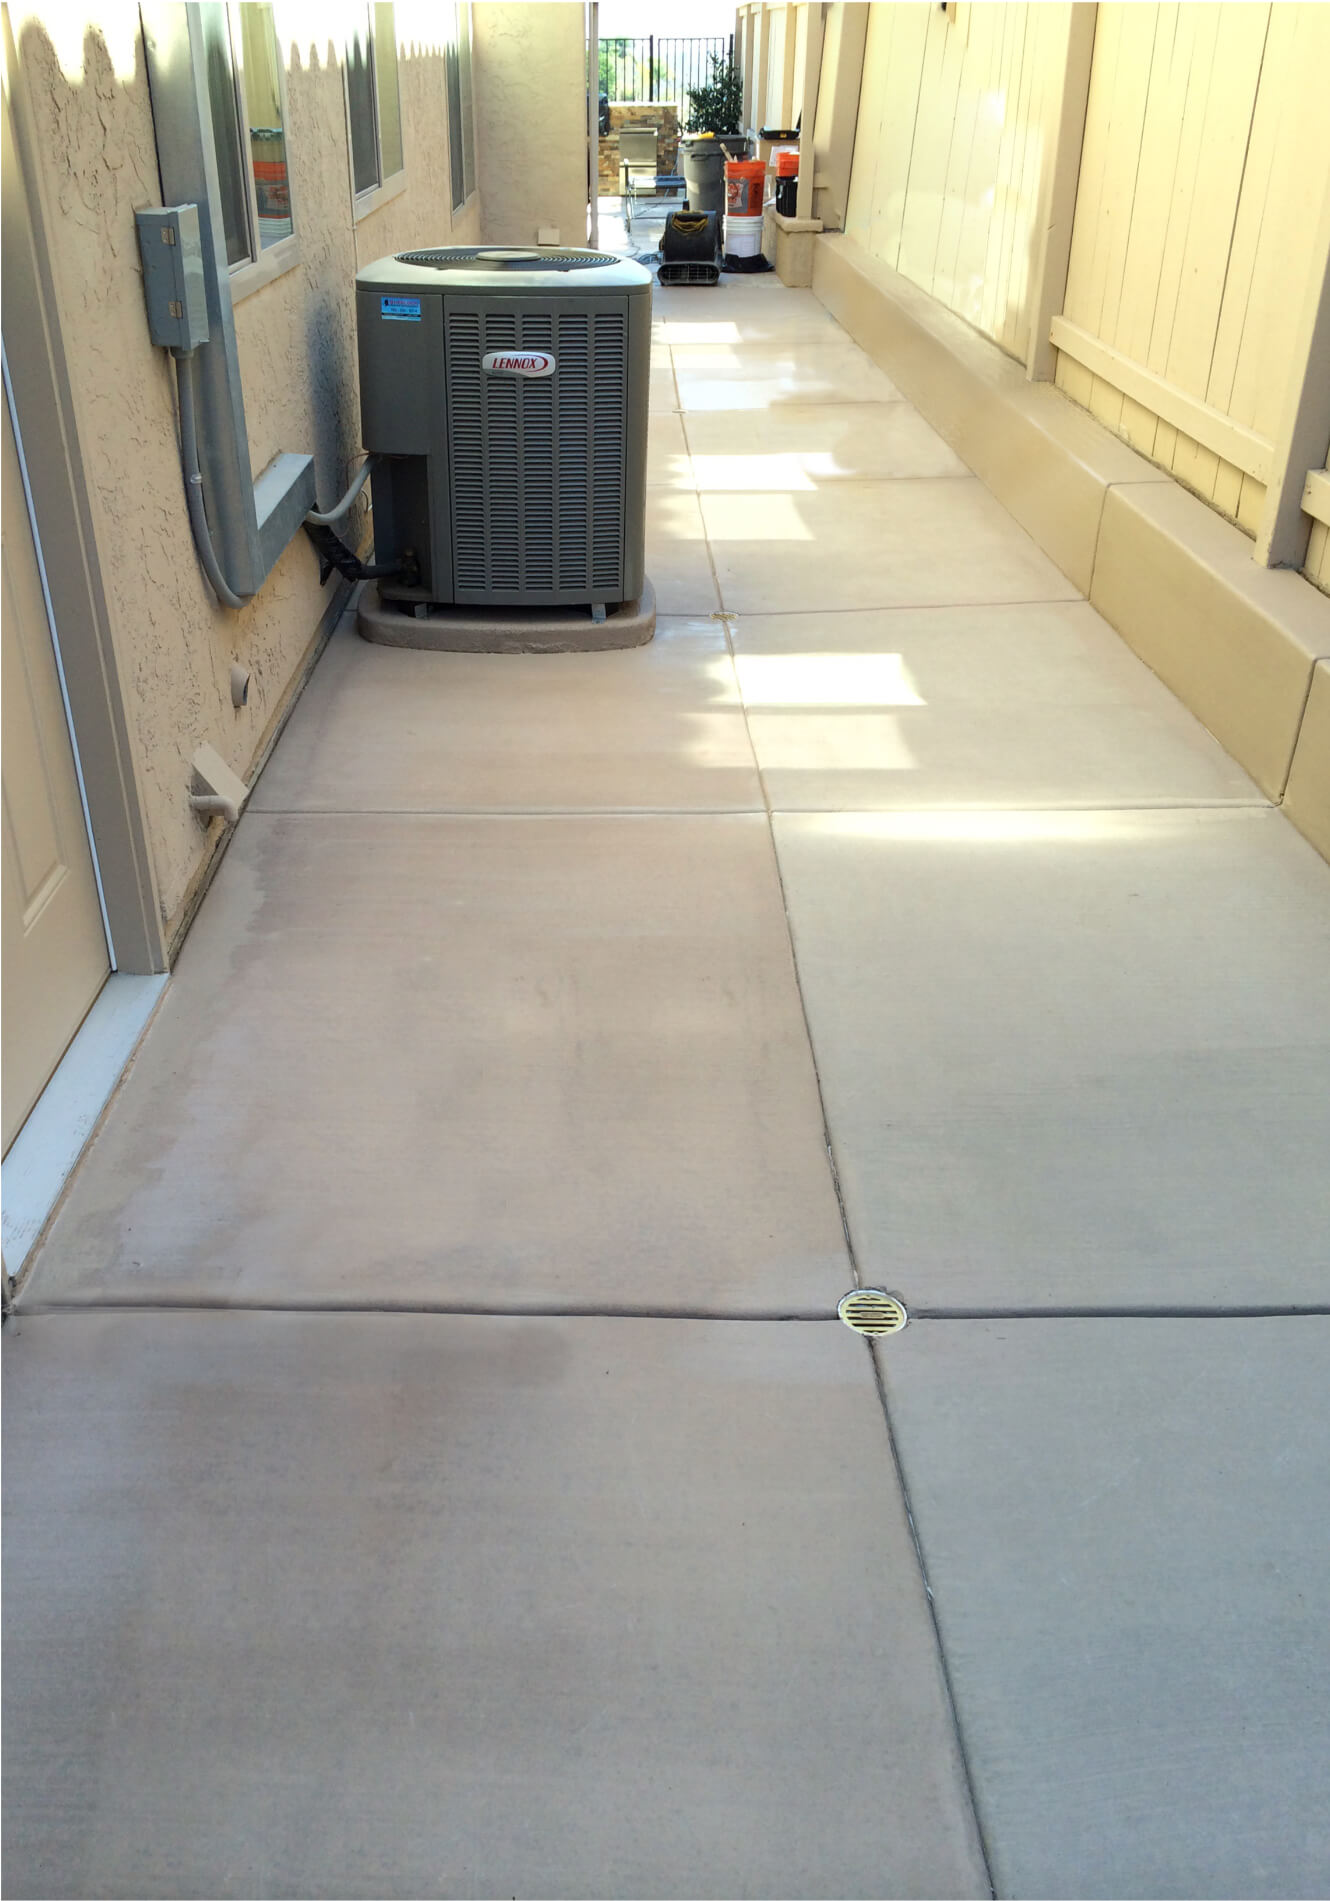 We fix concrete color that does not match.